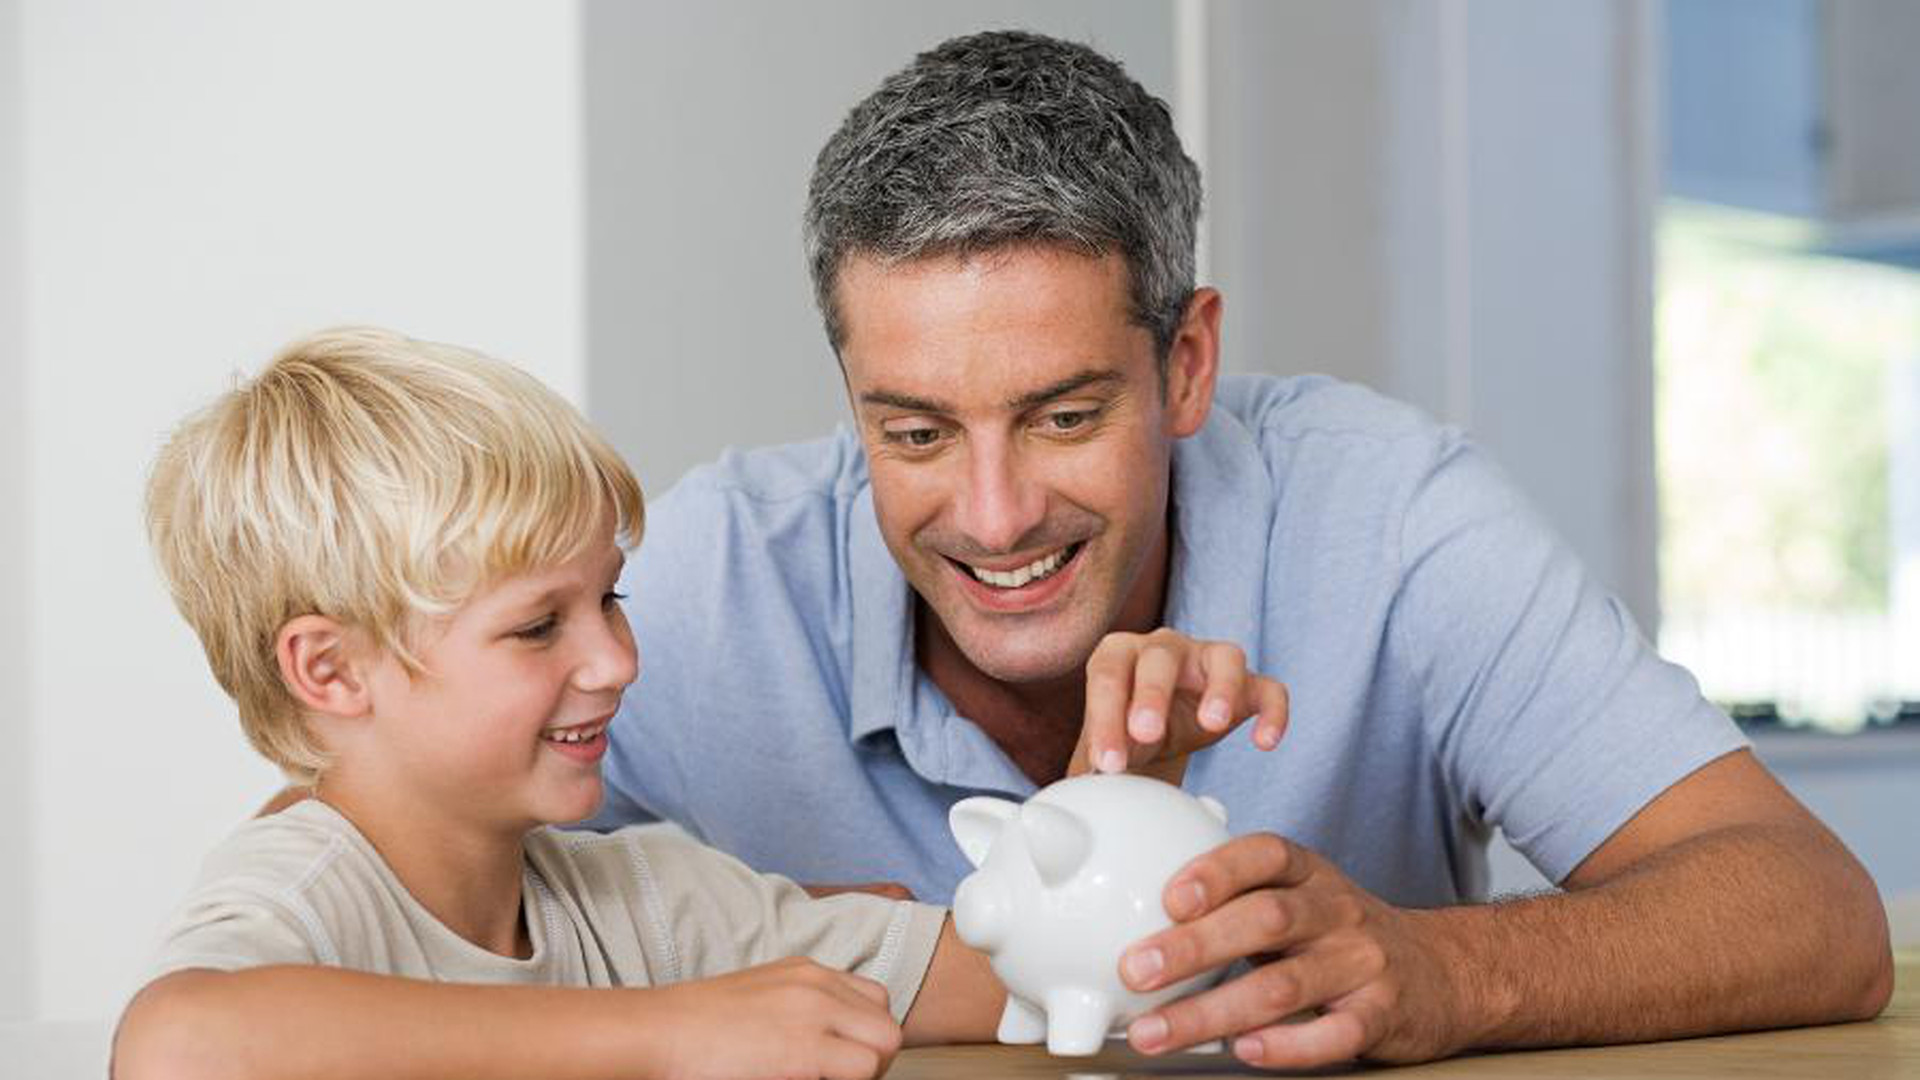 Teach Kids About Money While You're Stuck At Home